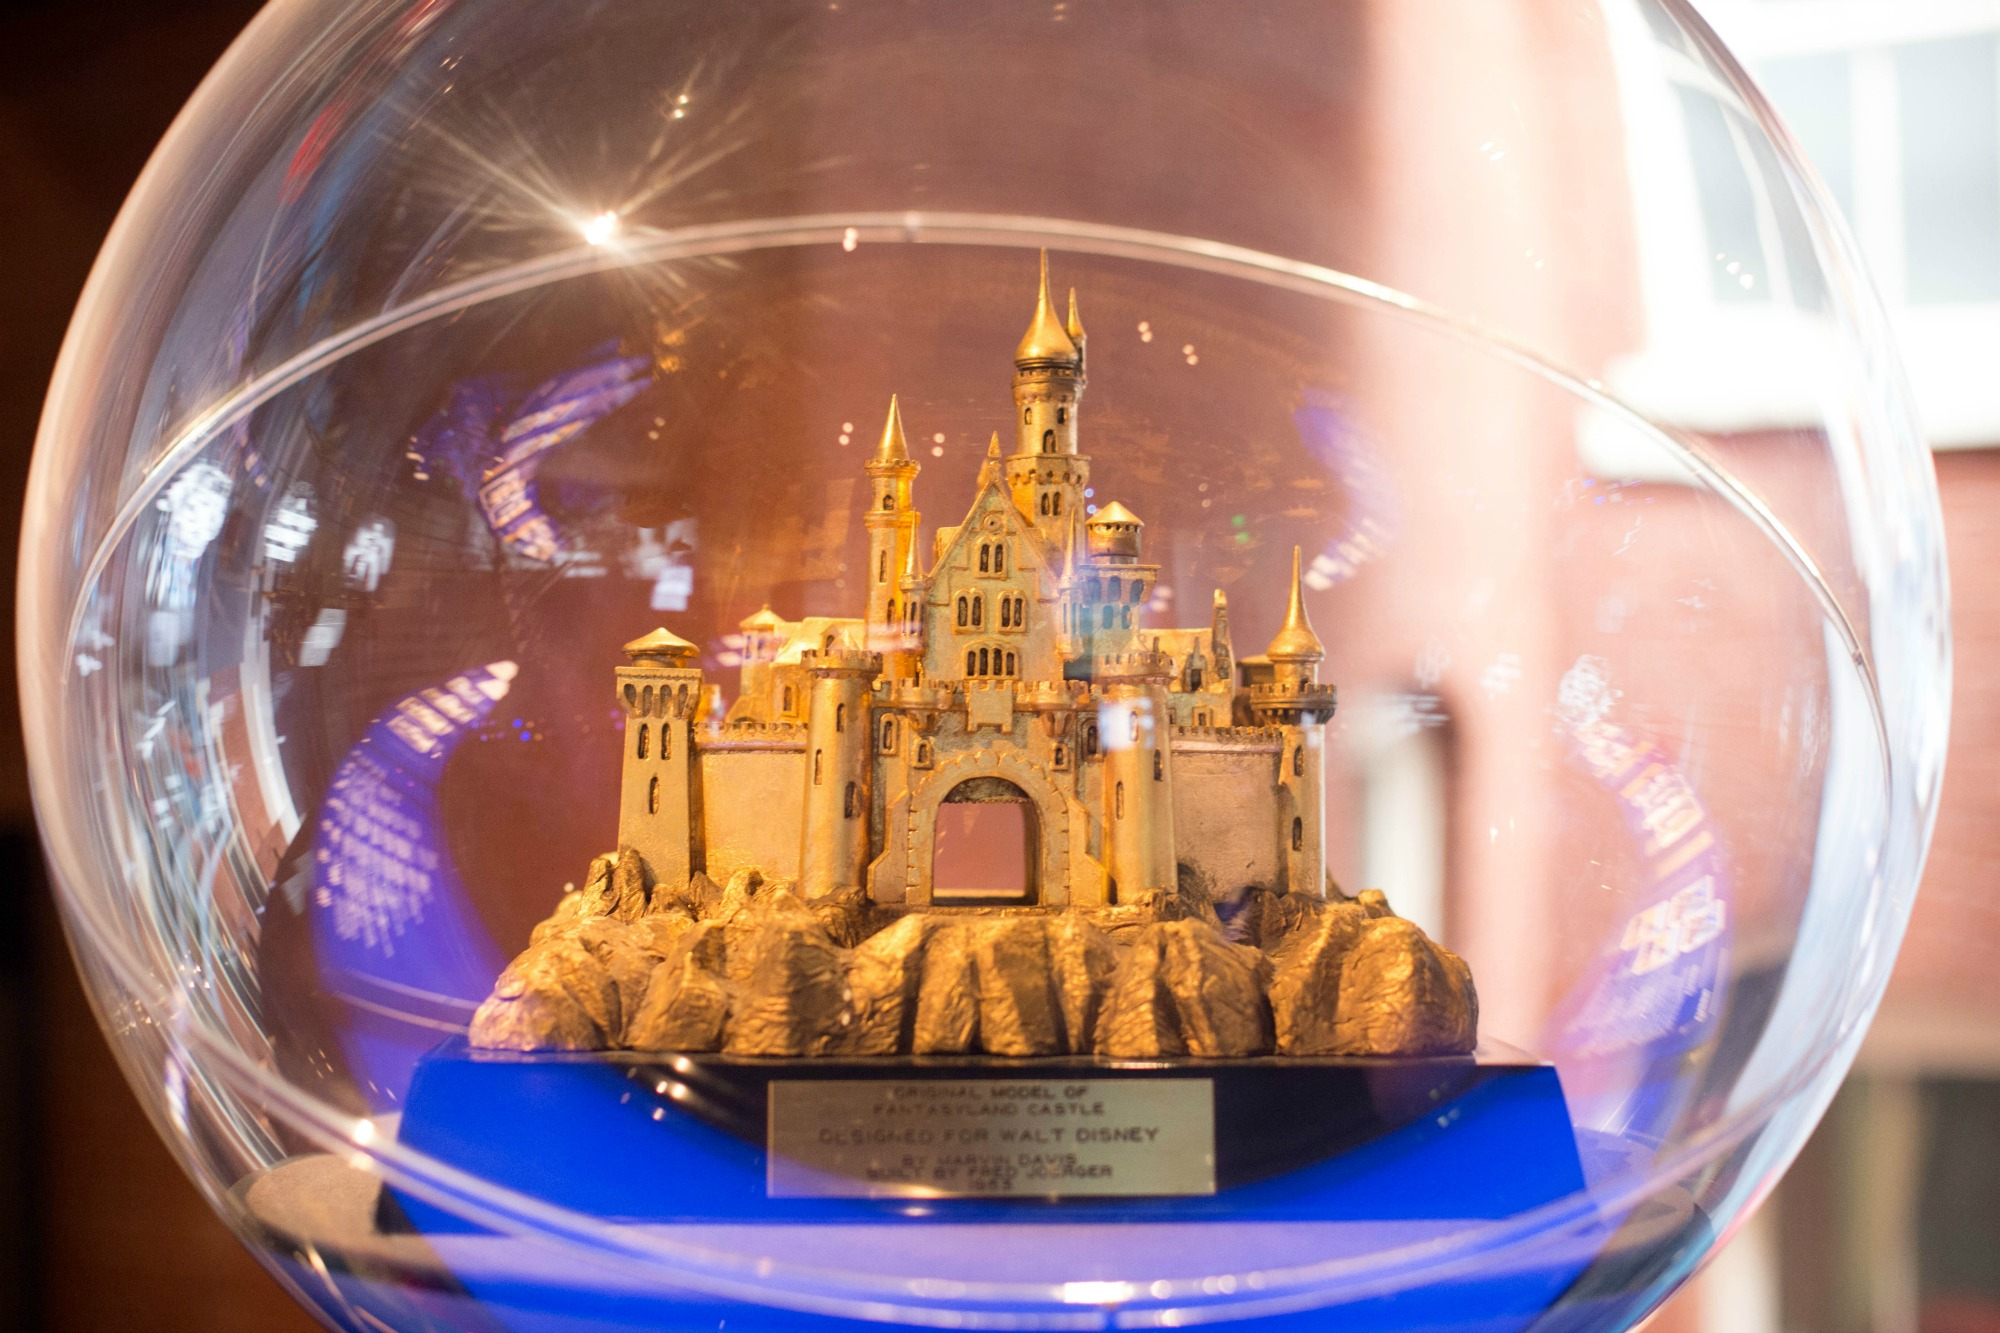 Sleeping Beauty's Castle, Walt Disney Family Museum